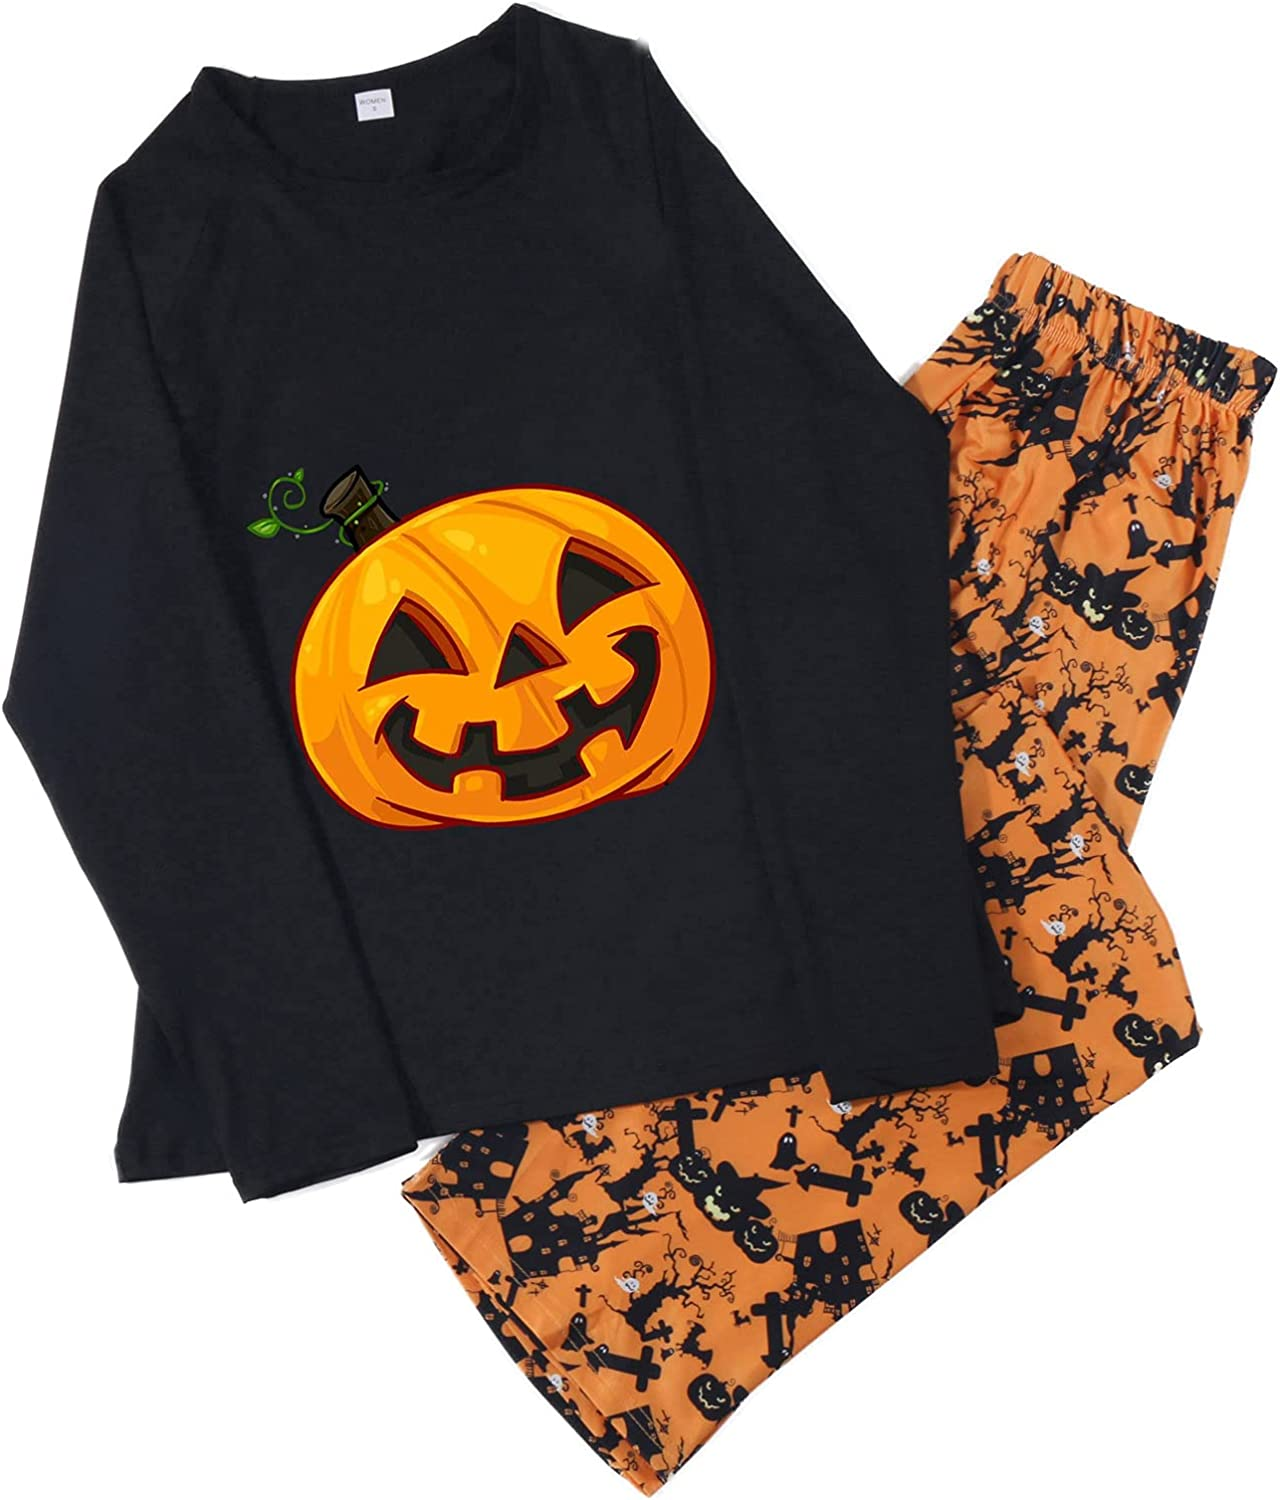 Halloween Pajamas Womens Tops Matching Family Pumpkin Print Outfits Sleepwear Set for Adult and Kids